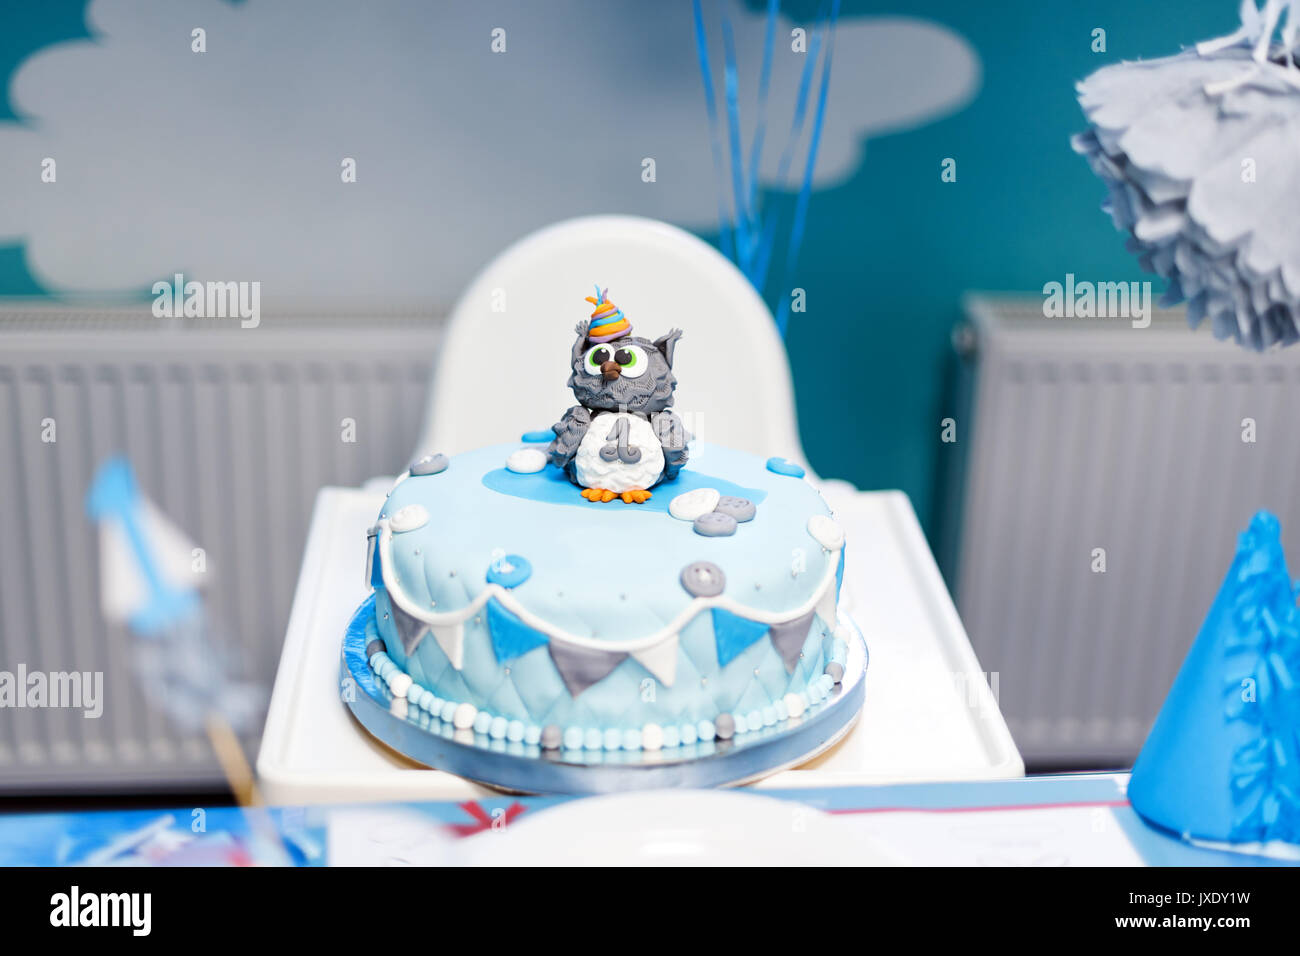 Pleasing Cake For First Birthday Number One And Owl Figure Made Of Sugar Personalised Birthday Cards Akebfashionlily Jamesorg